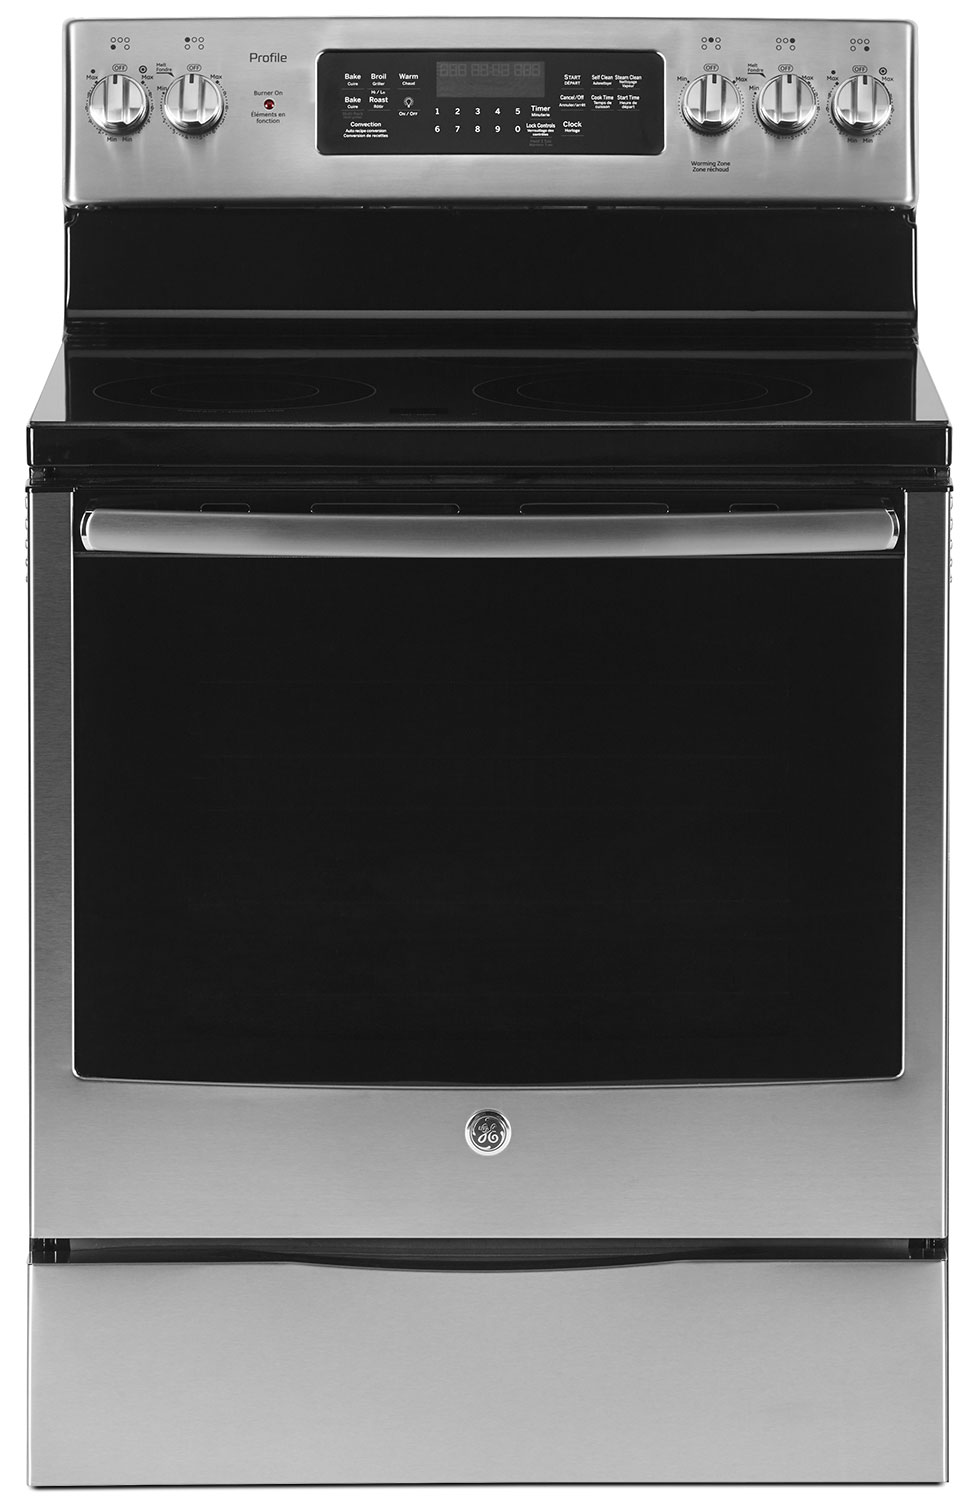 GE 6.2 Cu. Ft. Freestanding Electric Convection Range – PCB905SKSS